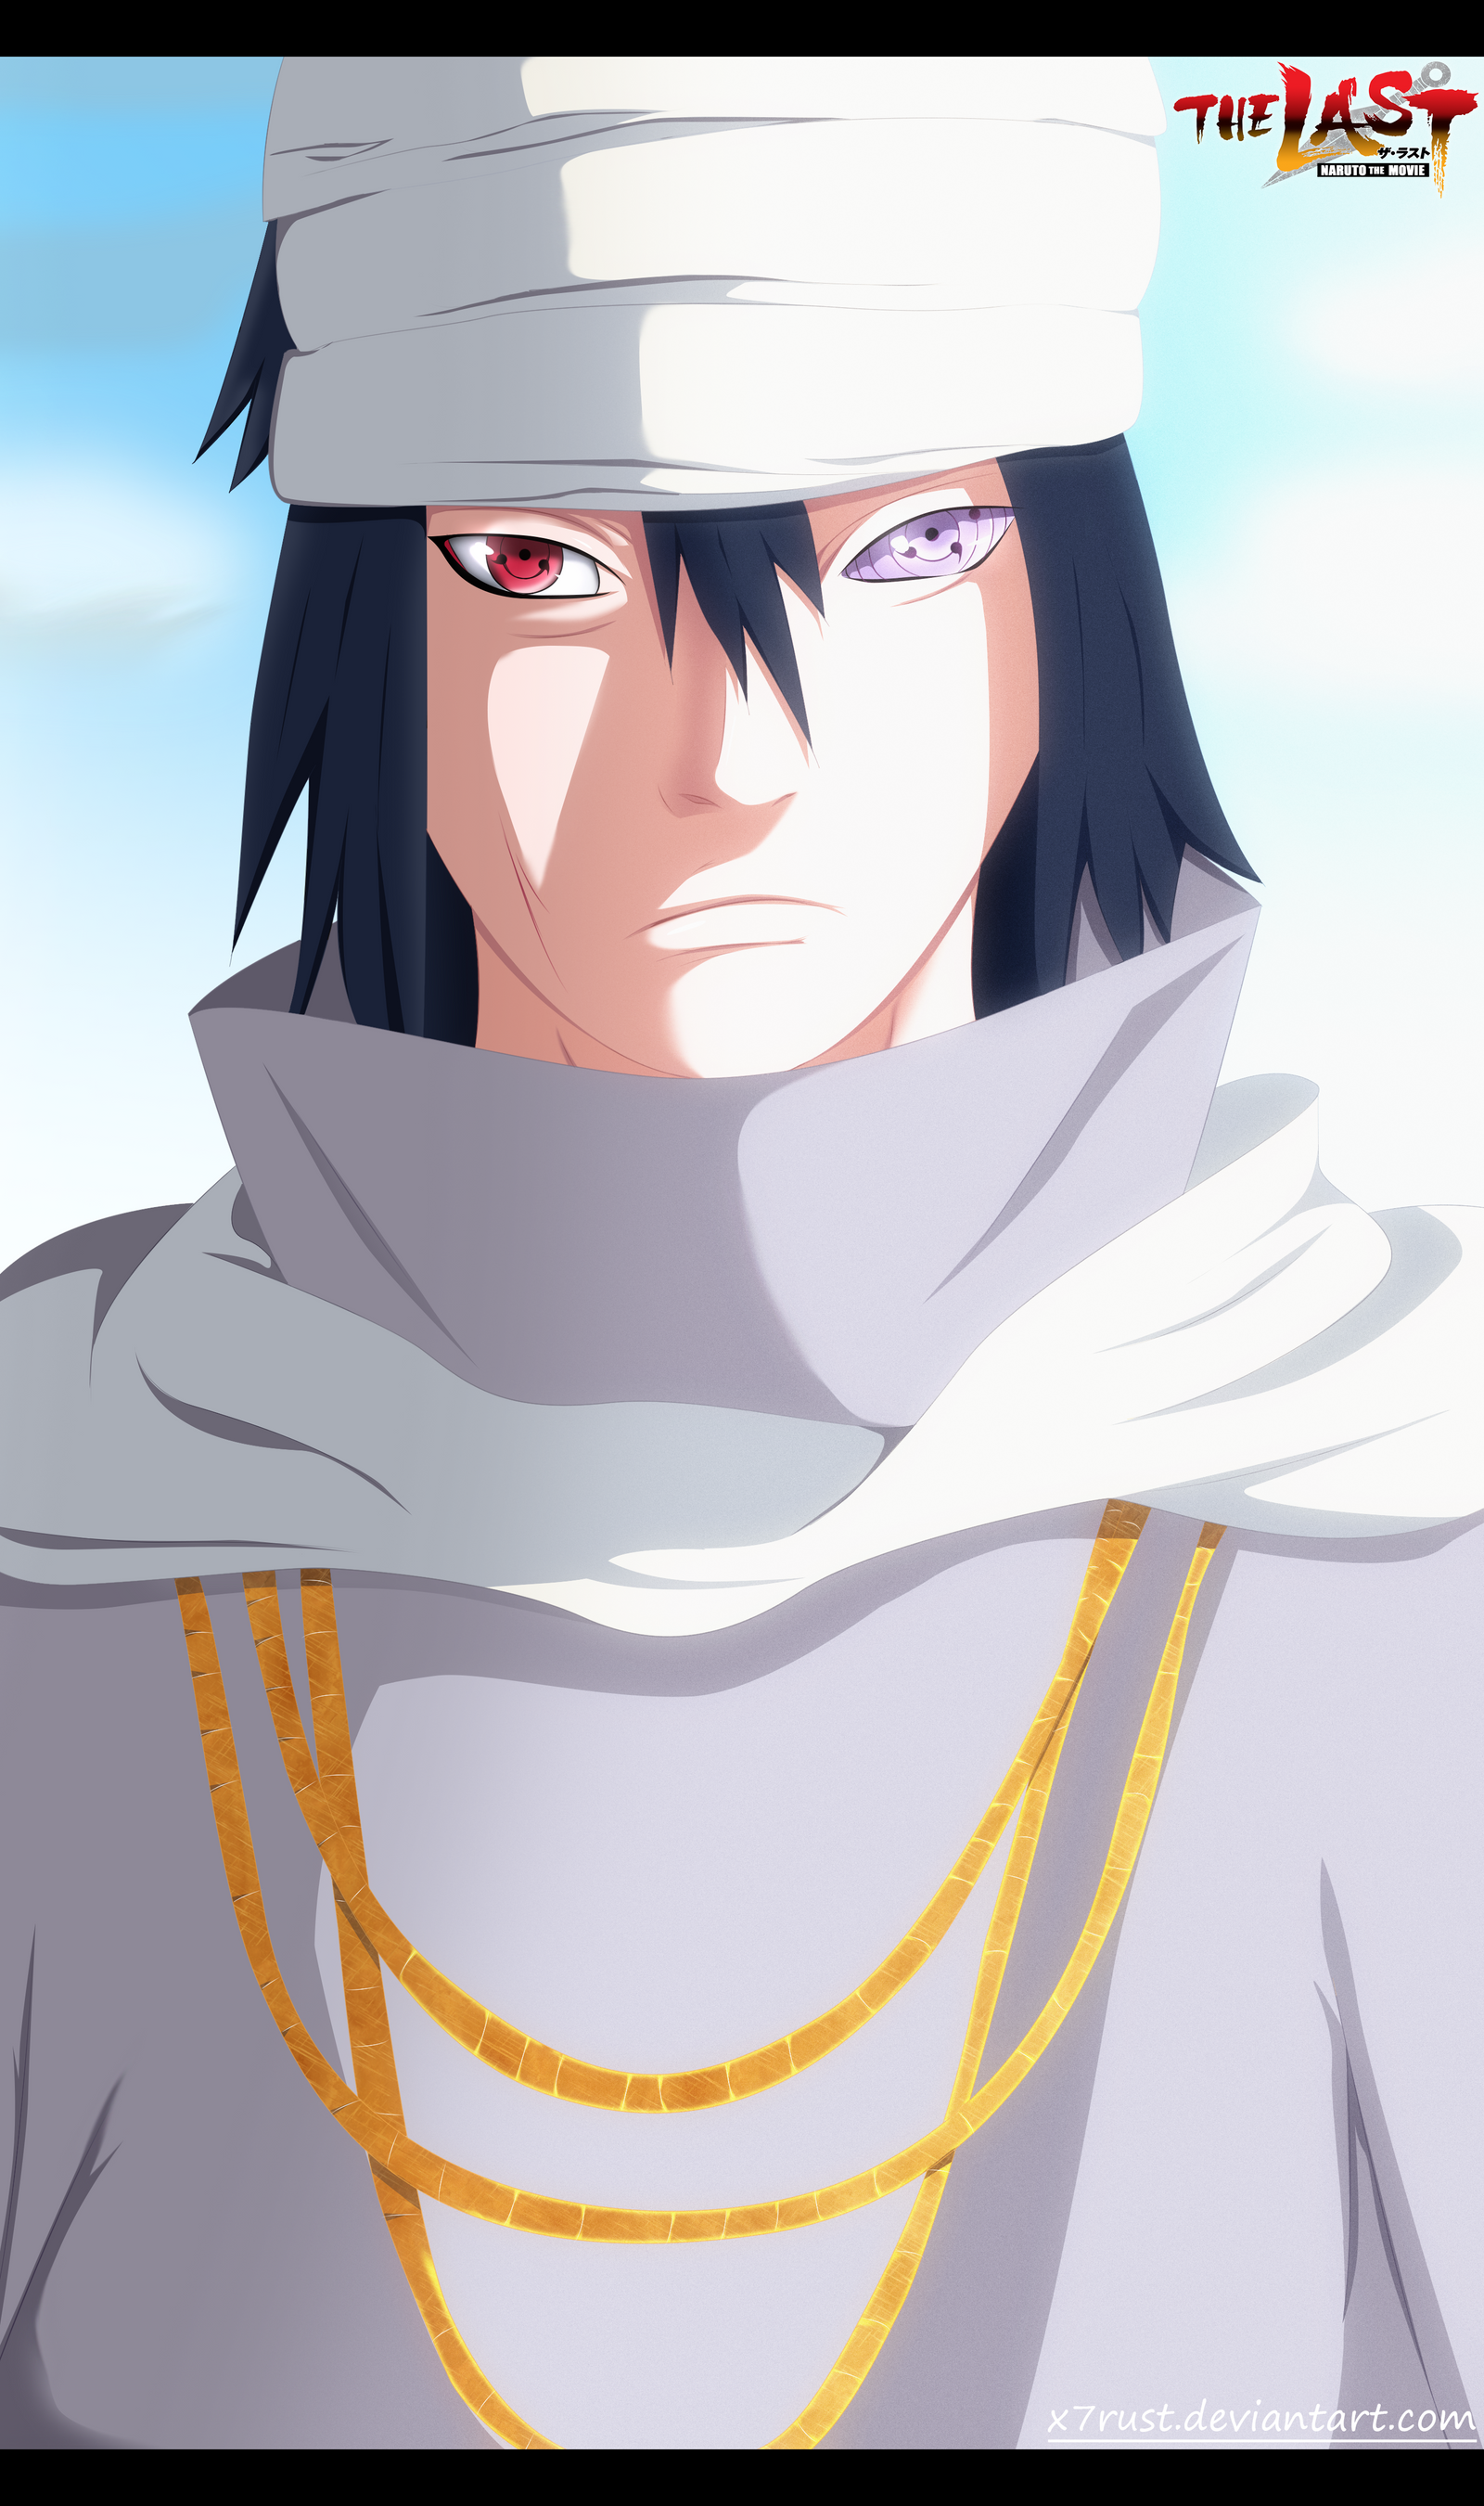 Naruto The last movie - Sasuke by X7Rust on DeviantArt